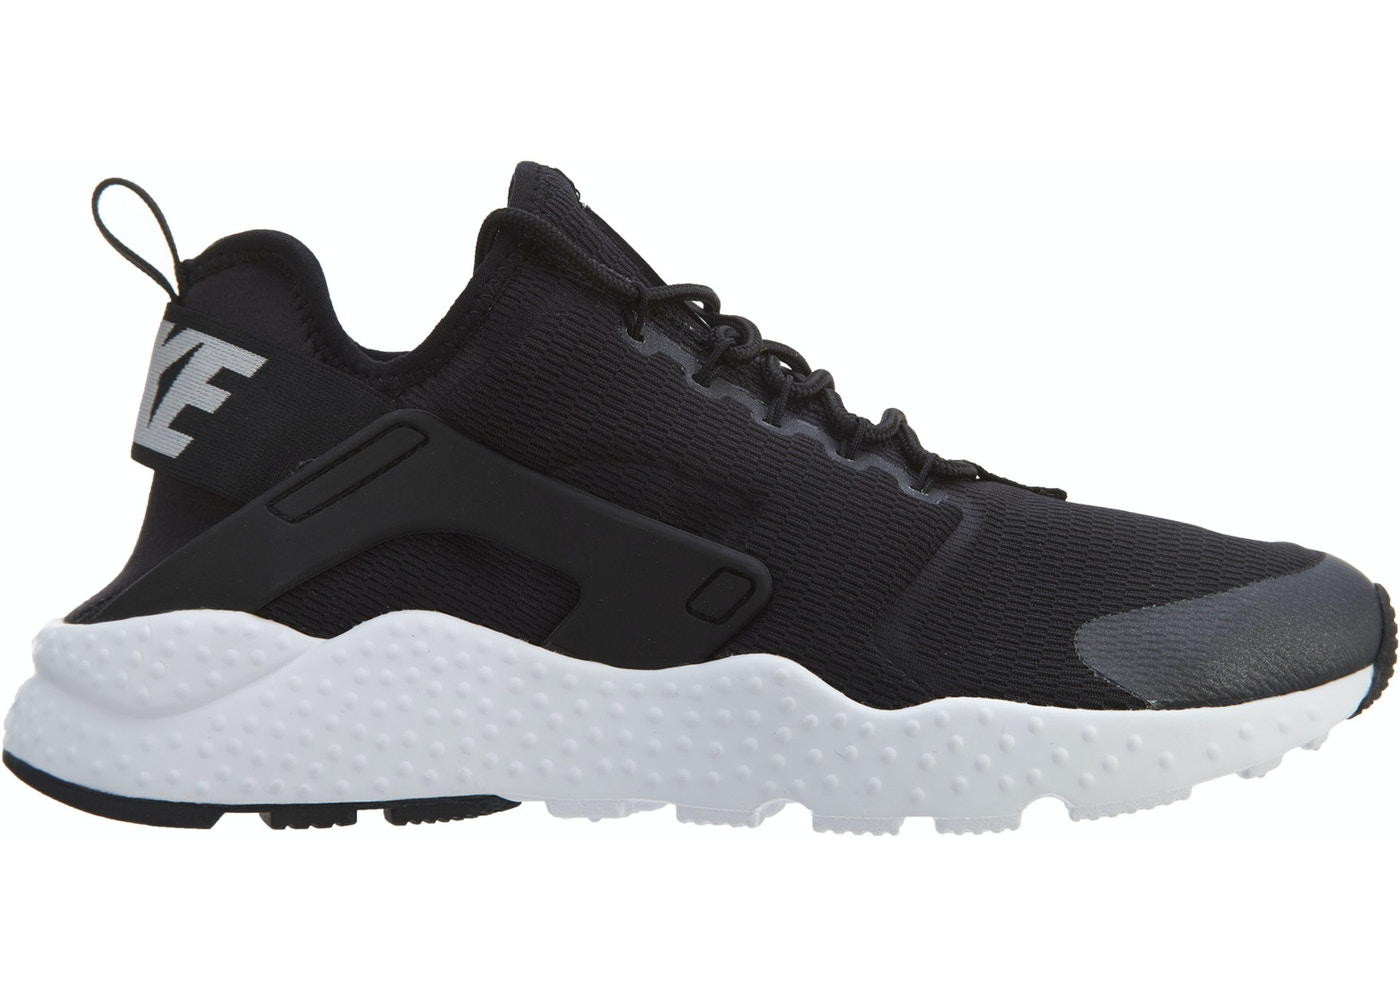 newest 9f0f5 14778 Sell. or Ask. Size: 10W. View All Bids. Air Huarache Run Ultra Black White  ...